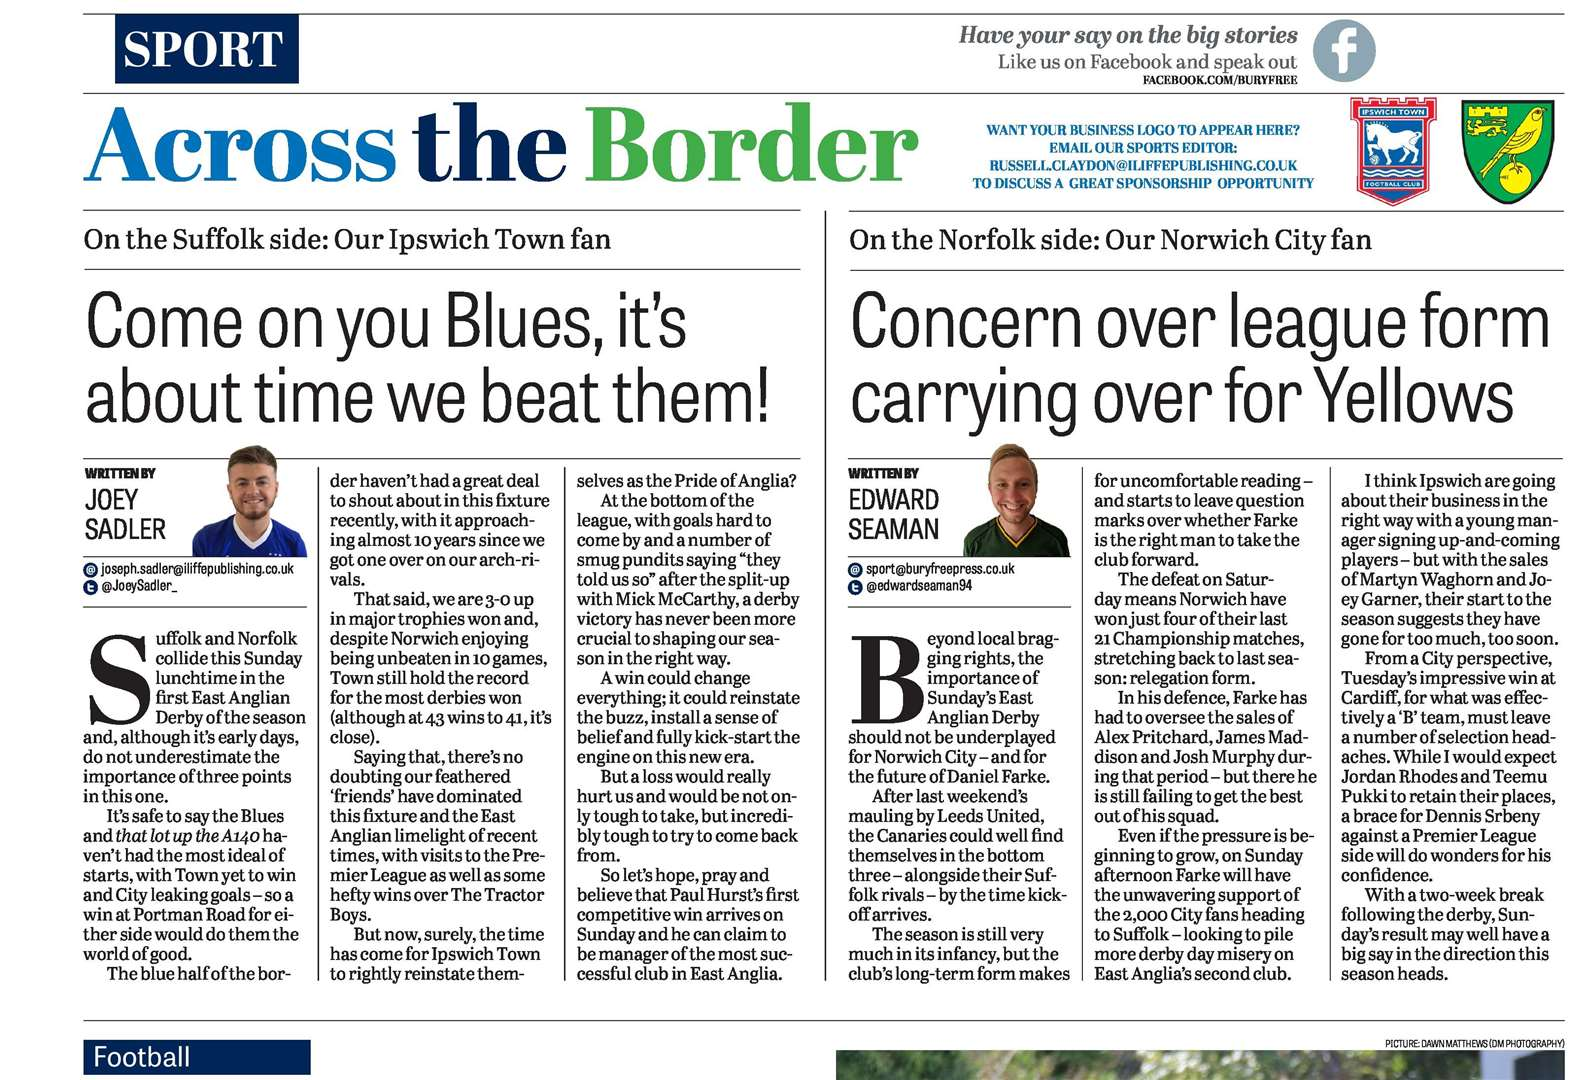 Your letters published in the Bury Free Press, Friday, September 14